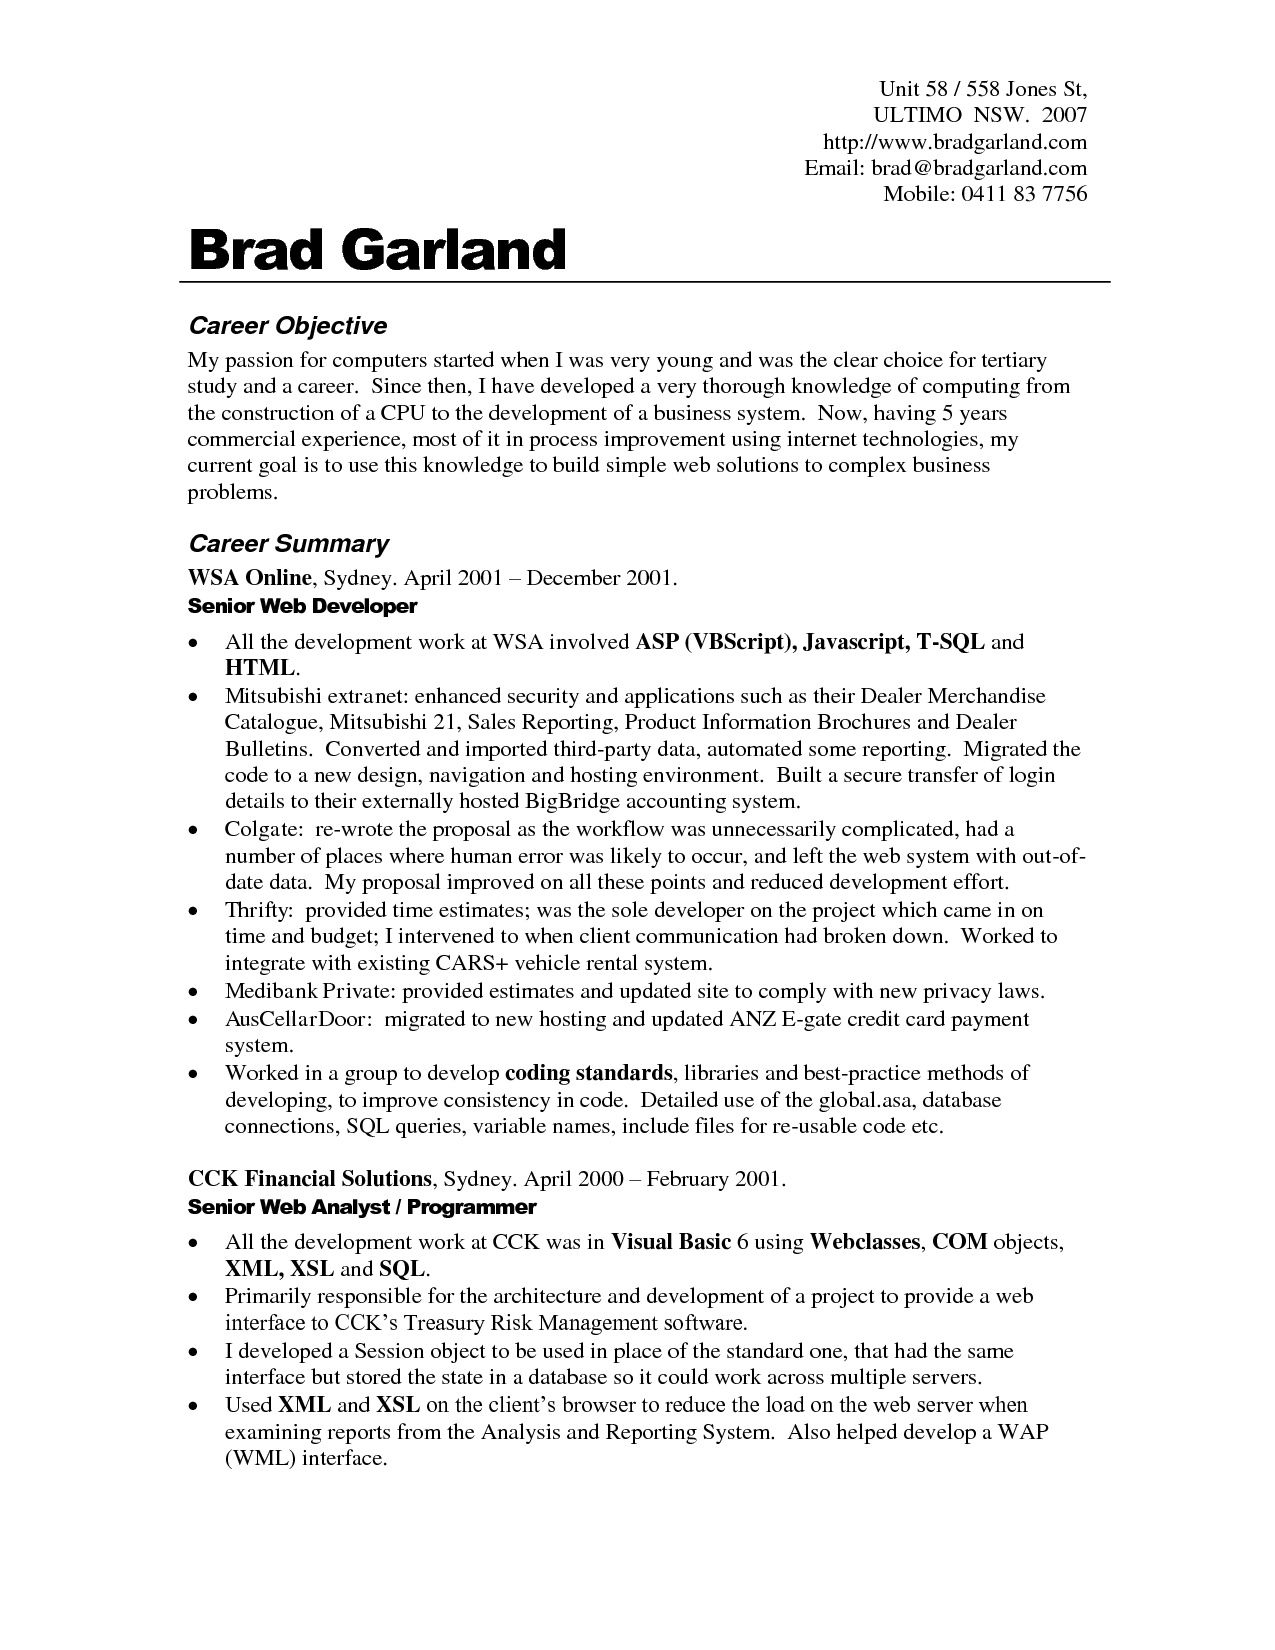 Carrier Objectives For Resume  Best Resume Objective Examples